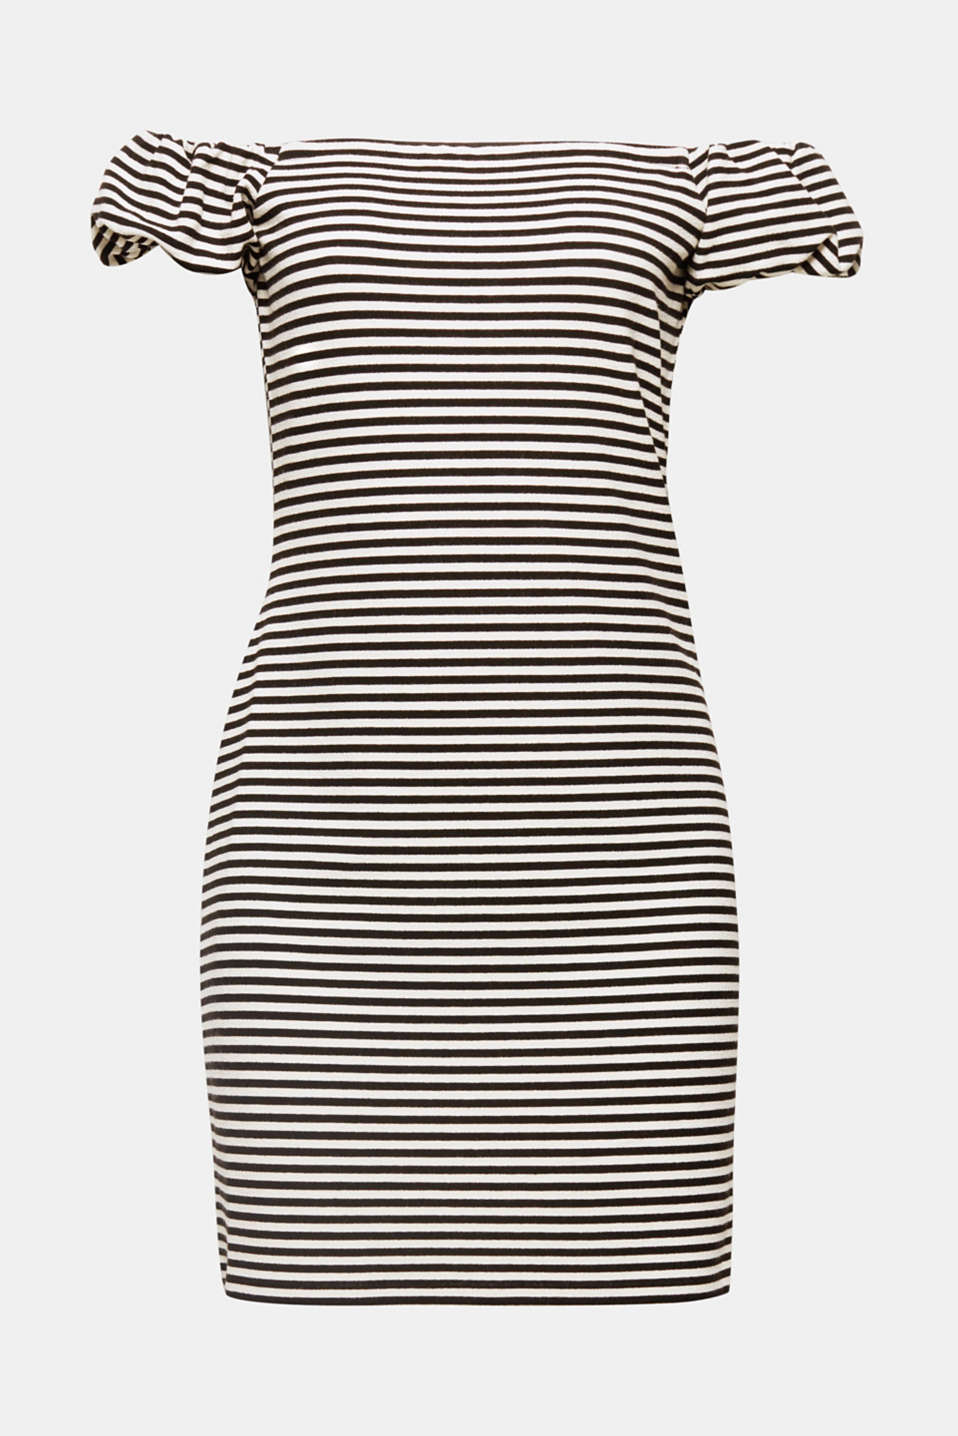 The off-the-shoulder style with small puff sleeves and the sporty stripes give this figure-enhancing dress in dense stretch jersey its cheeky look!